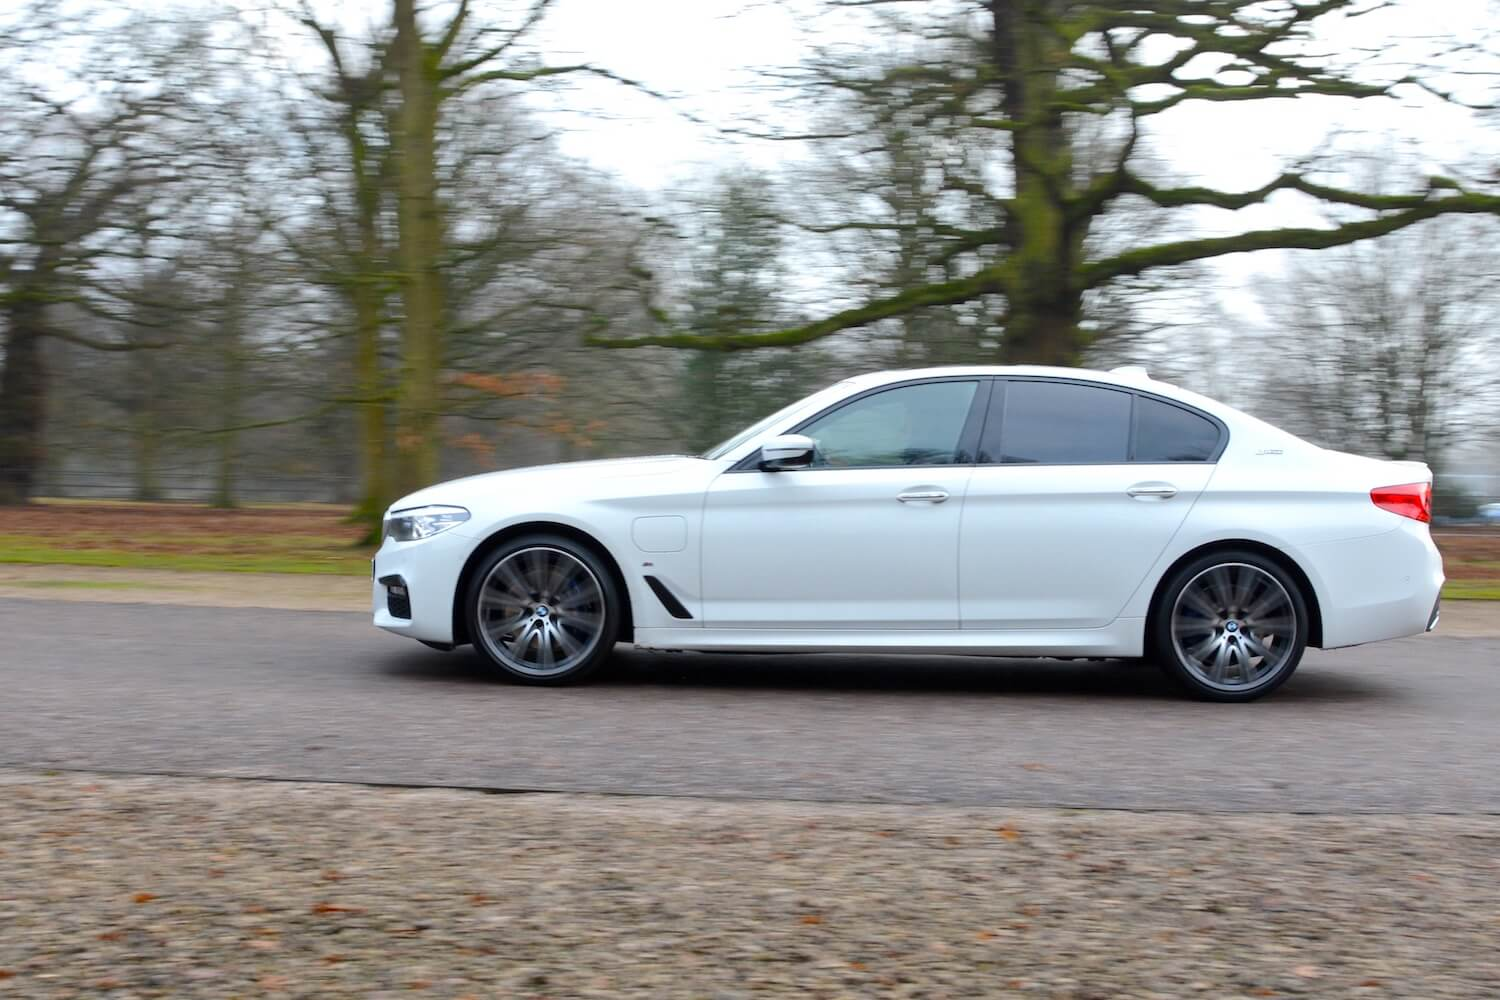 Bmw 530e M Sport Iperformance Saloon Review Greencarguidecouk